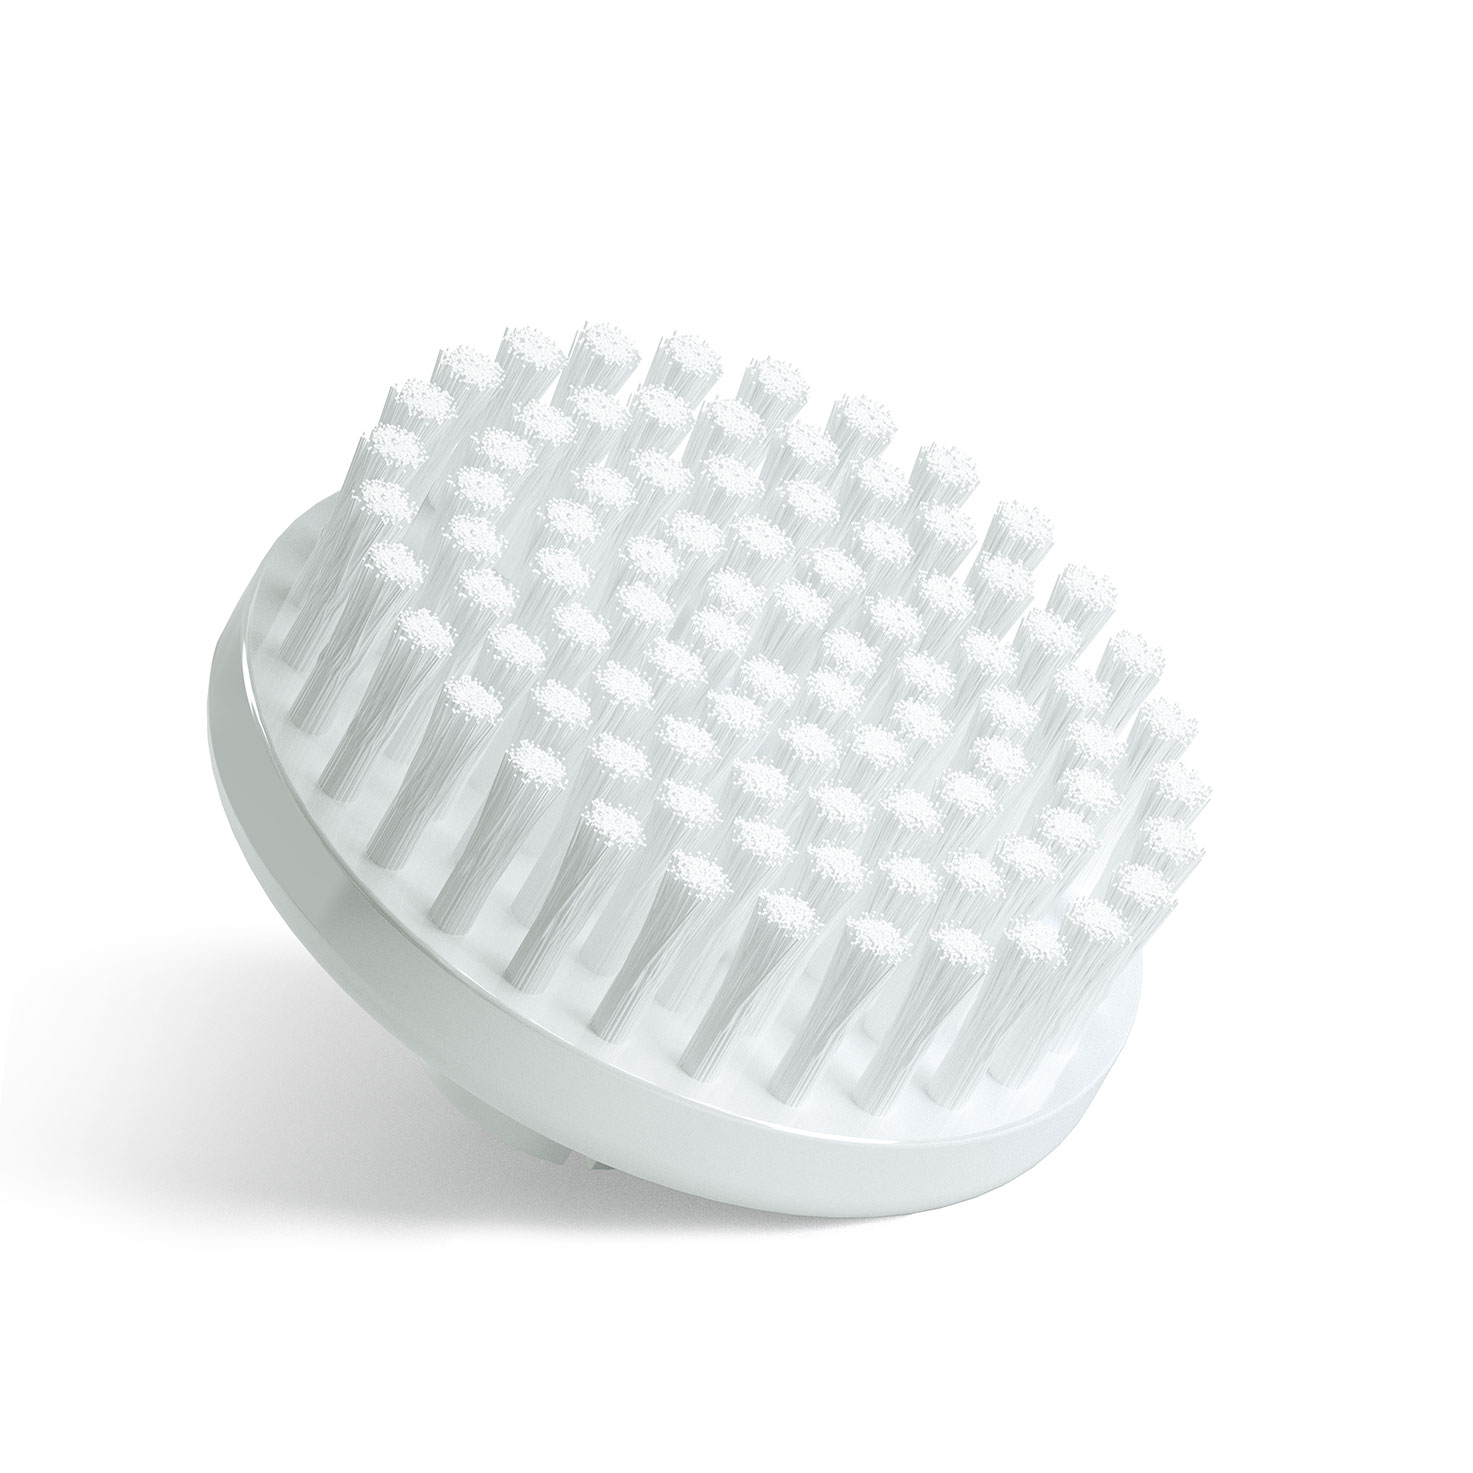 Braun facial cleansing brush refill